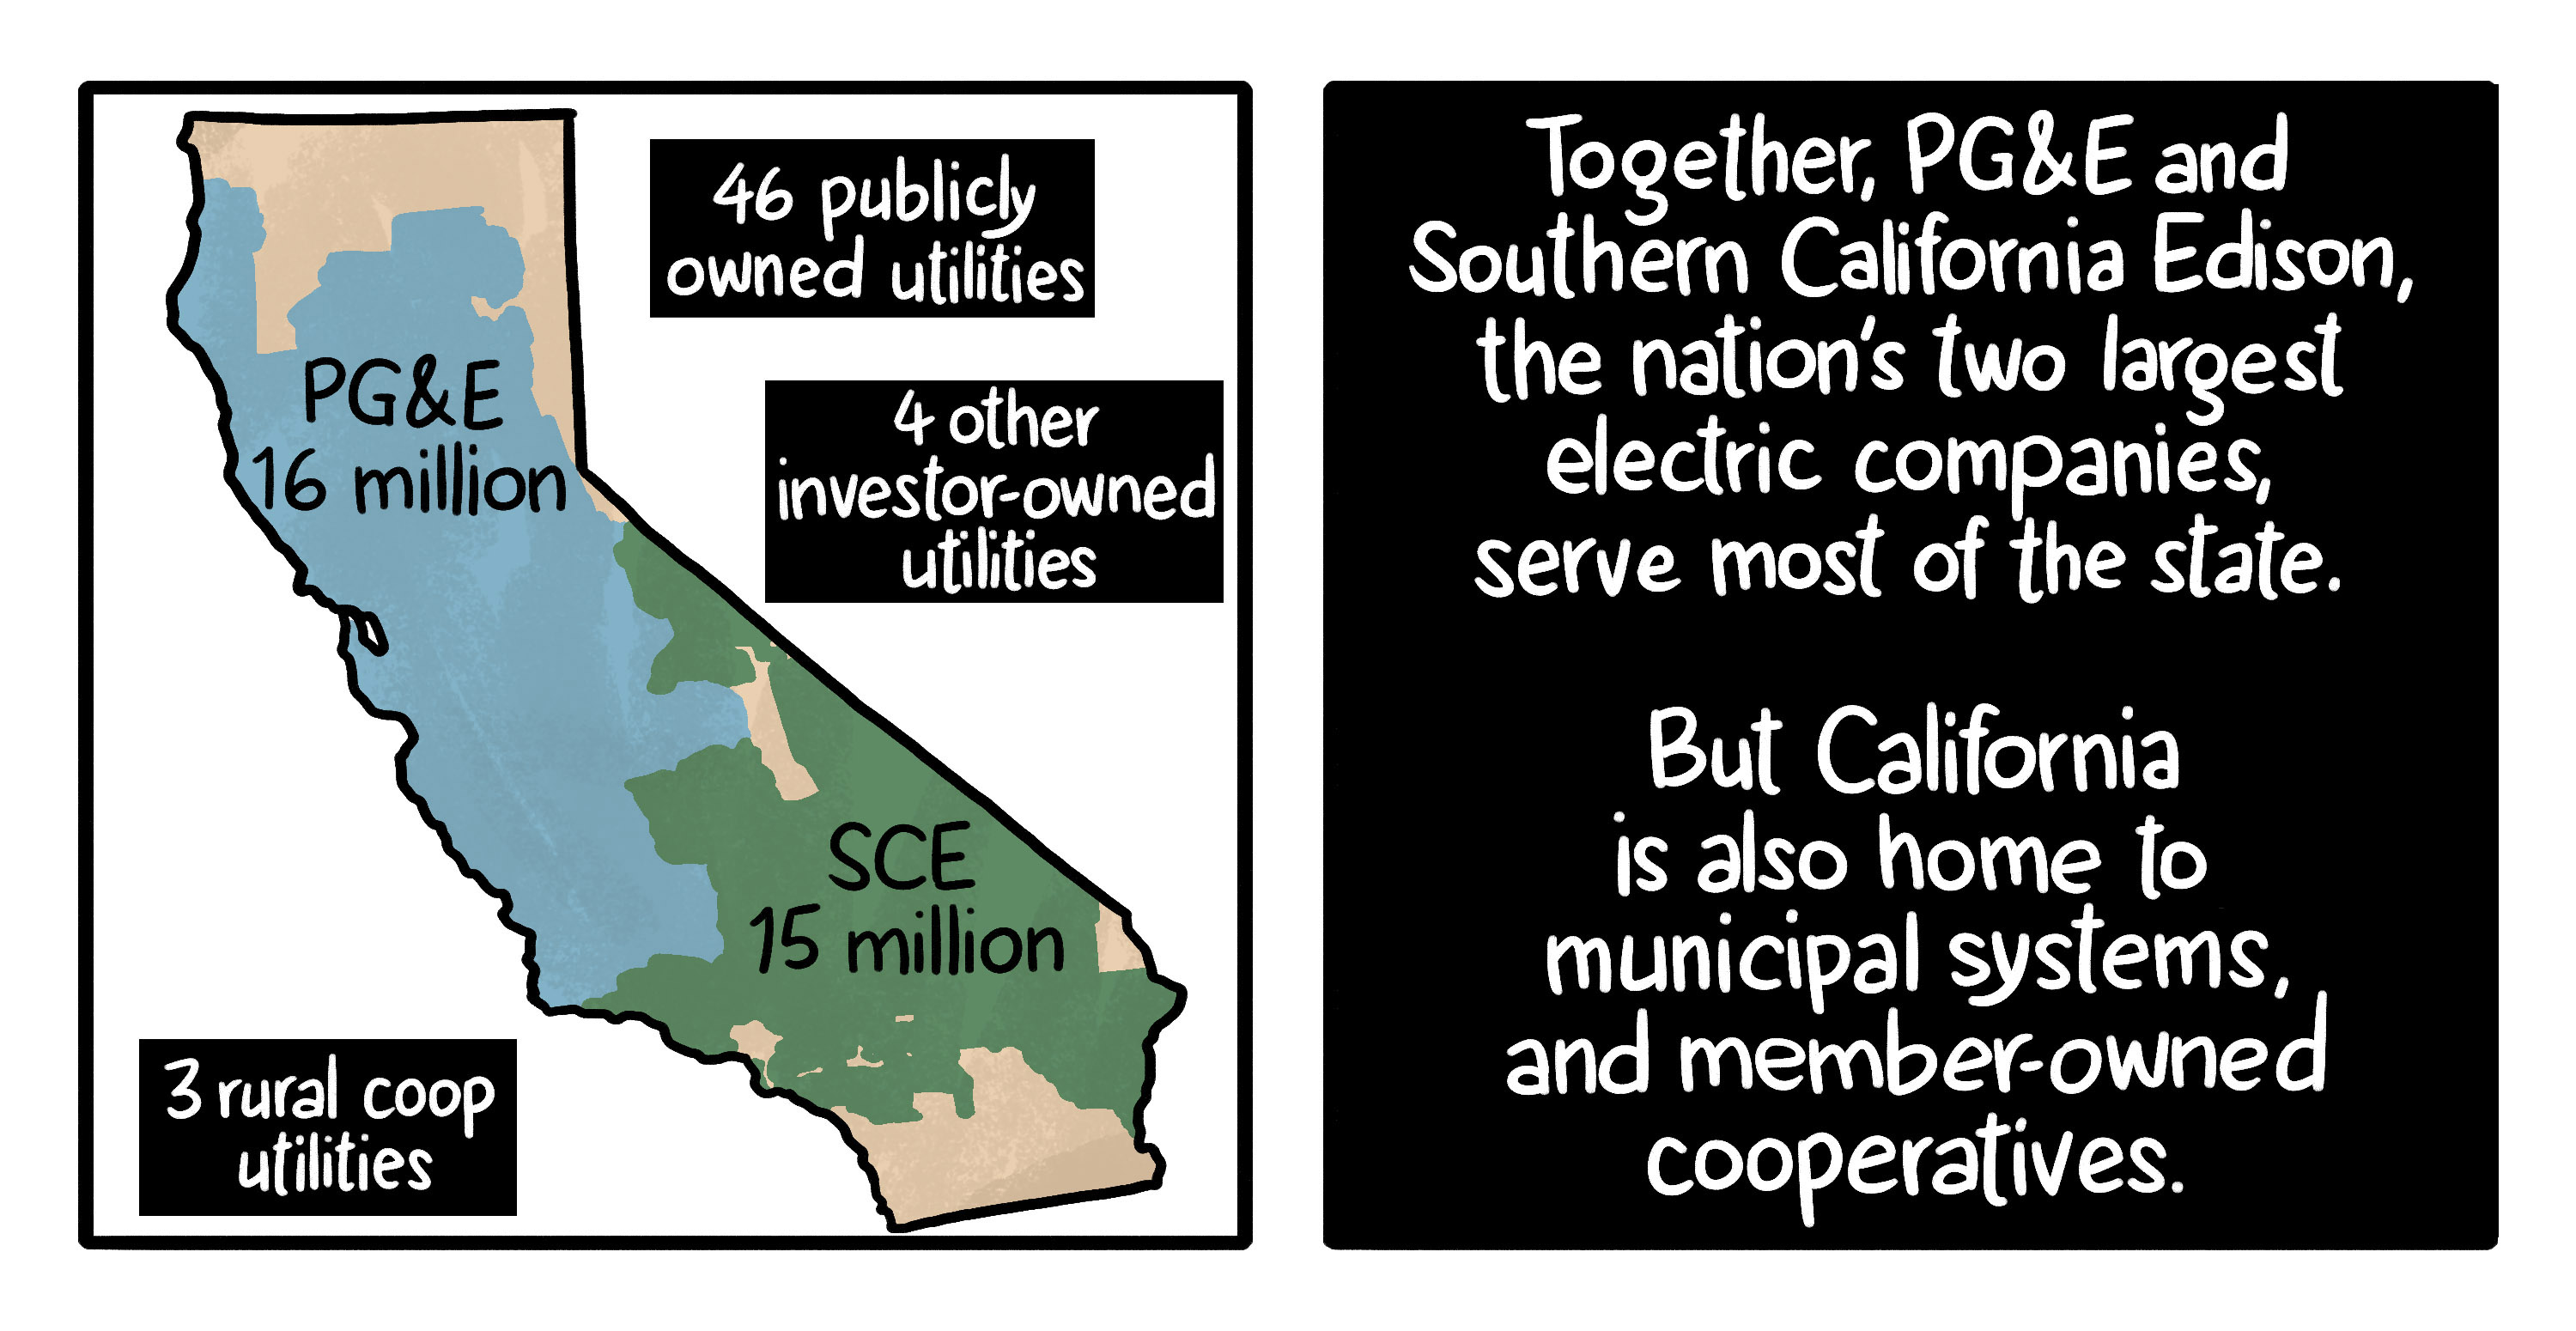 Illustration: PG&E and Southern California Edison are the two utilities serving most of California, but there are dozens of smaller municipally- or privately-owned utilities as well.